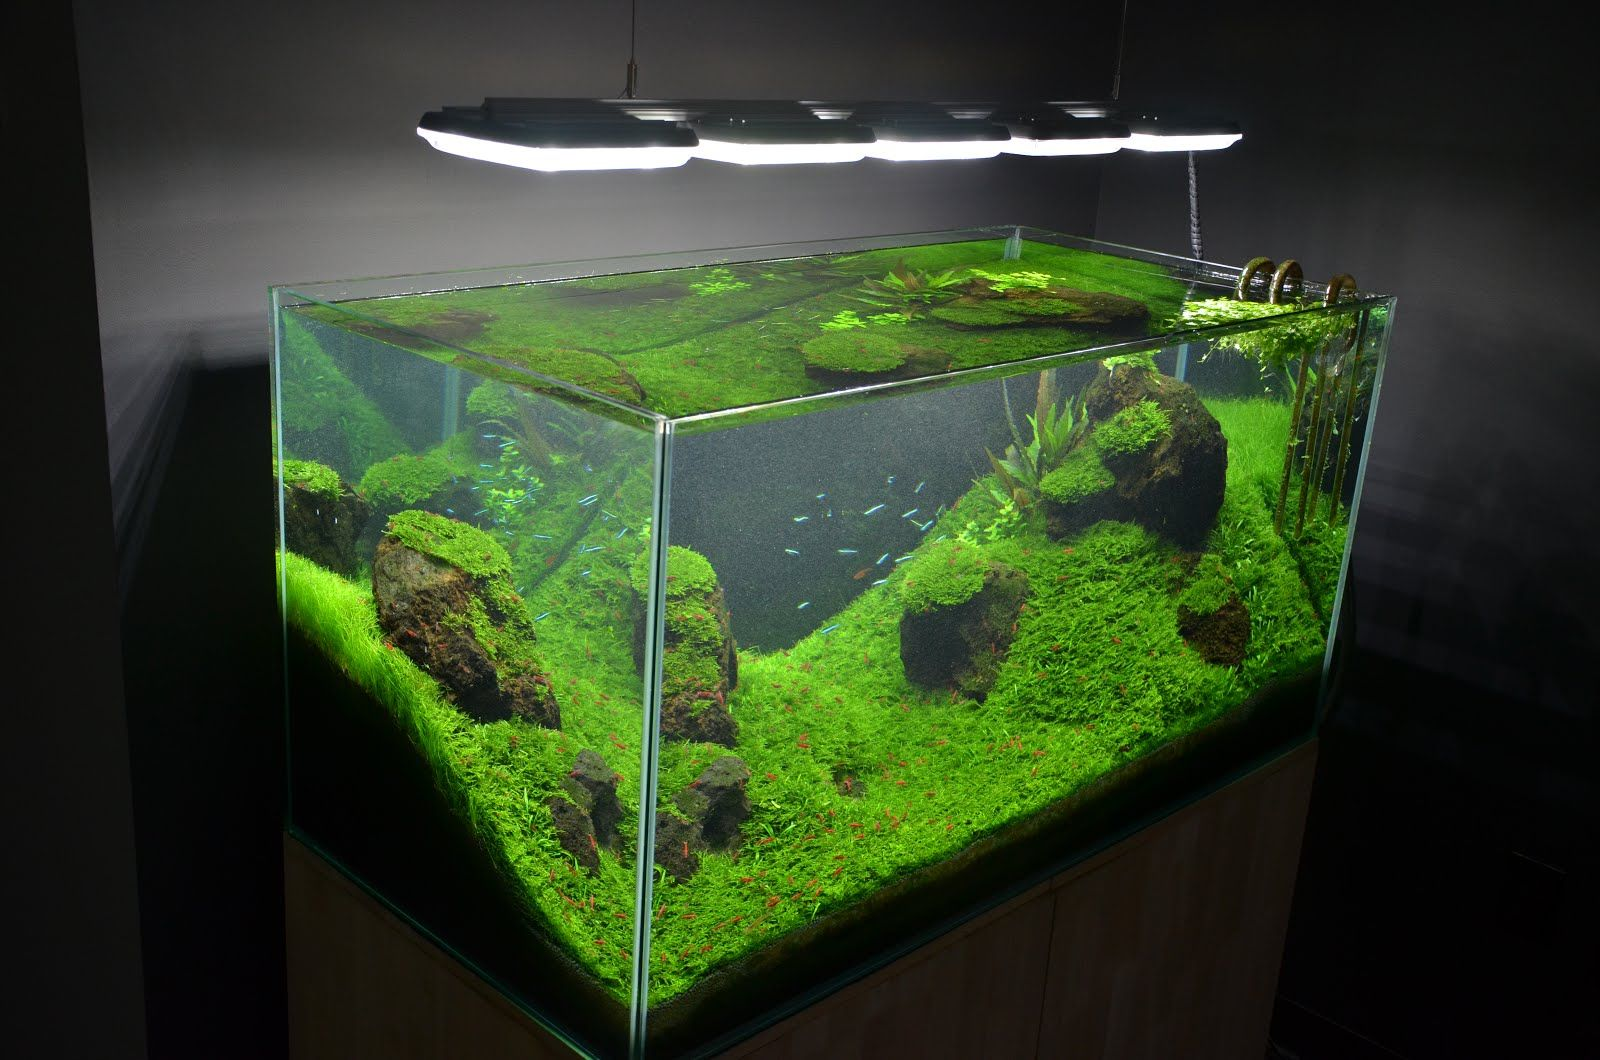 10 Best Fish Tanks: SeaClear, Fluval & More